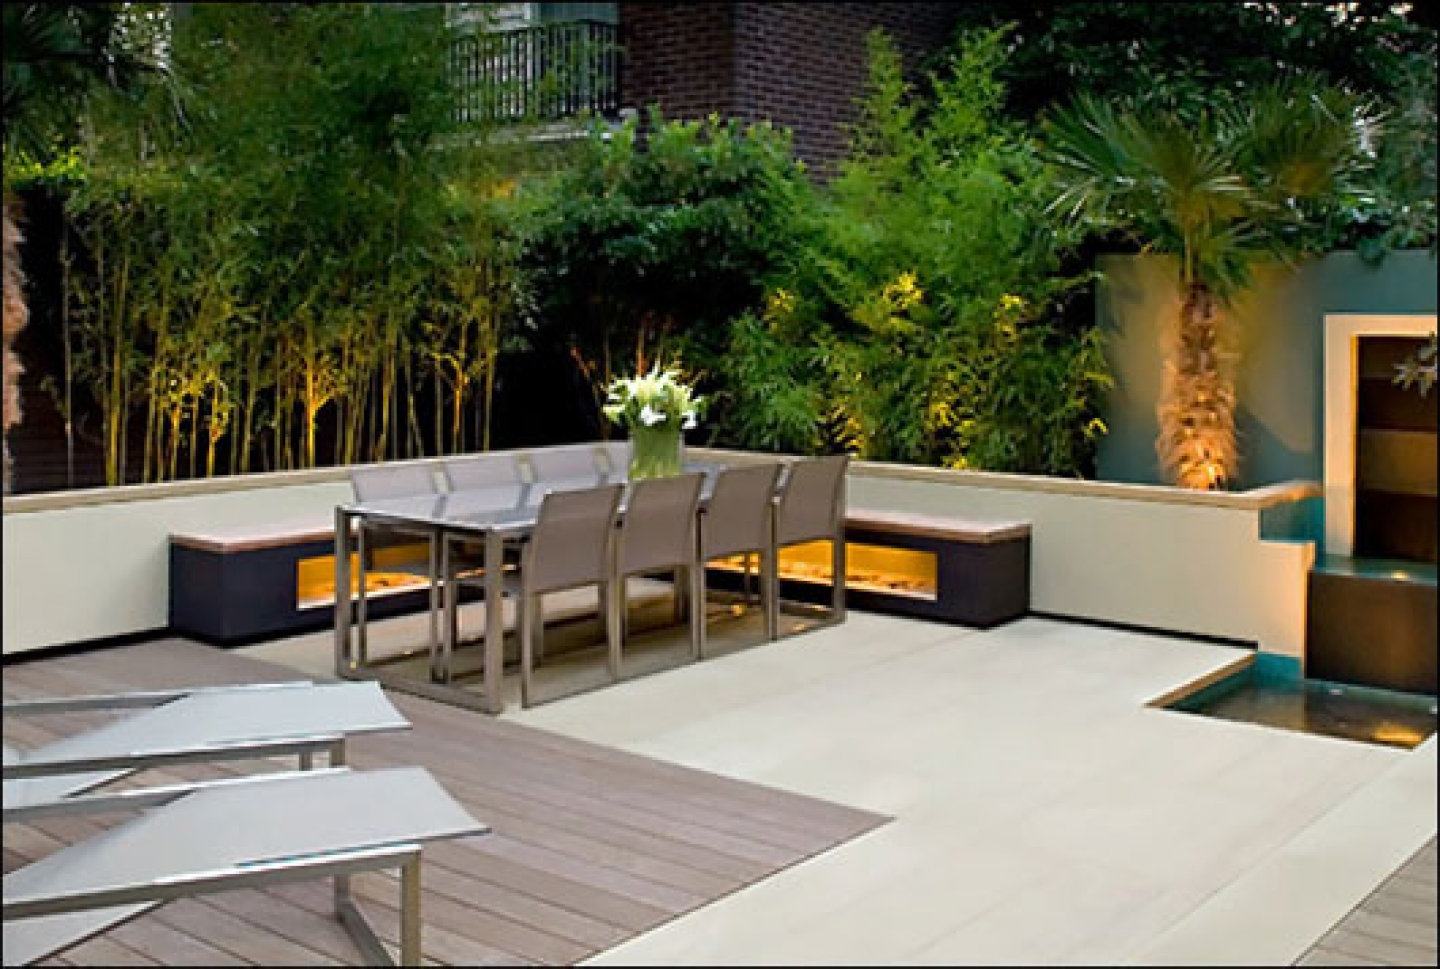 roof garden design rooftop garden design ideas with metal outdoor furniture and a nice LWJLHHX